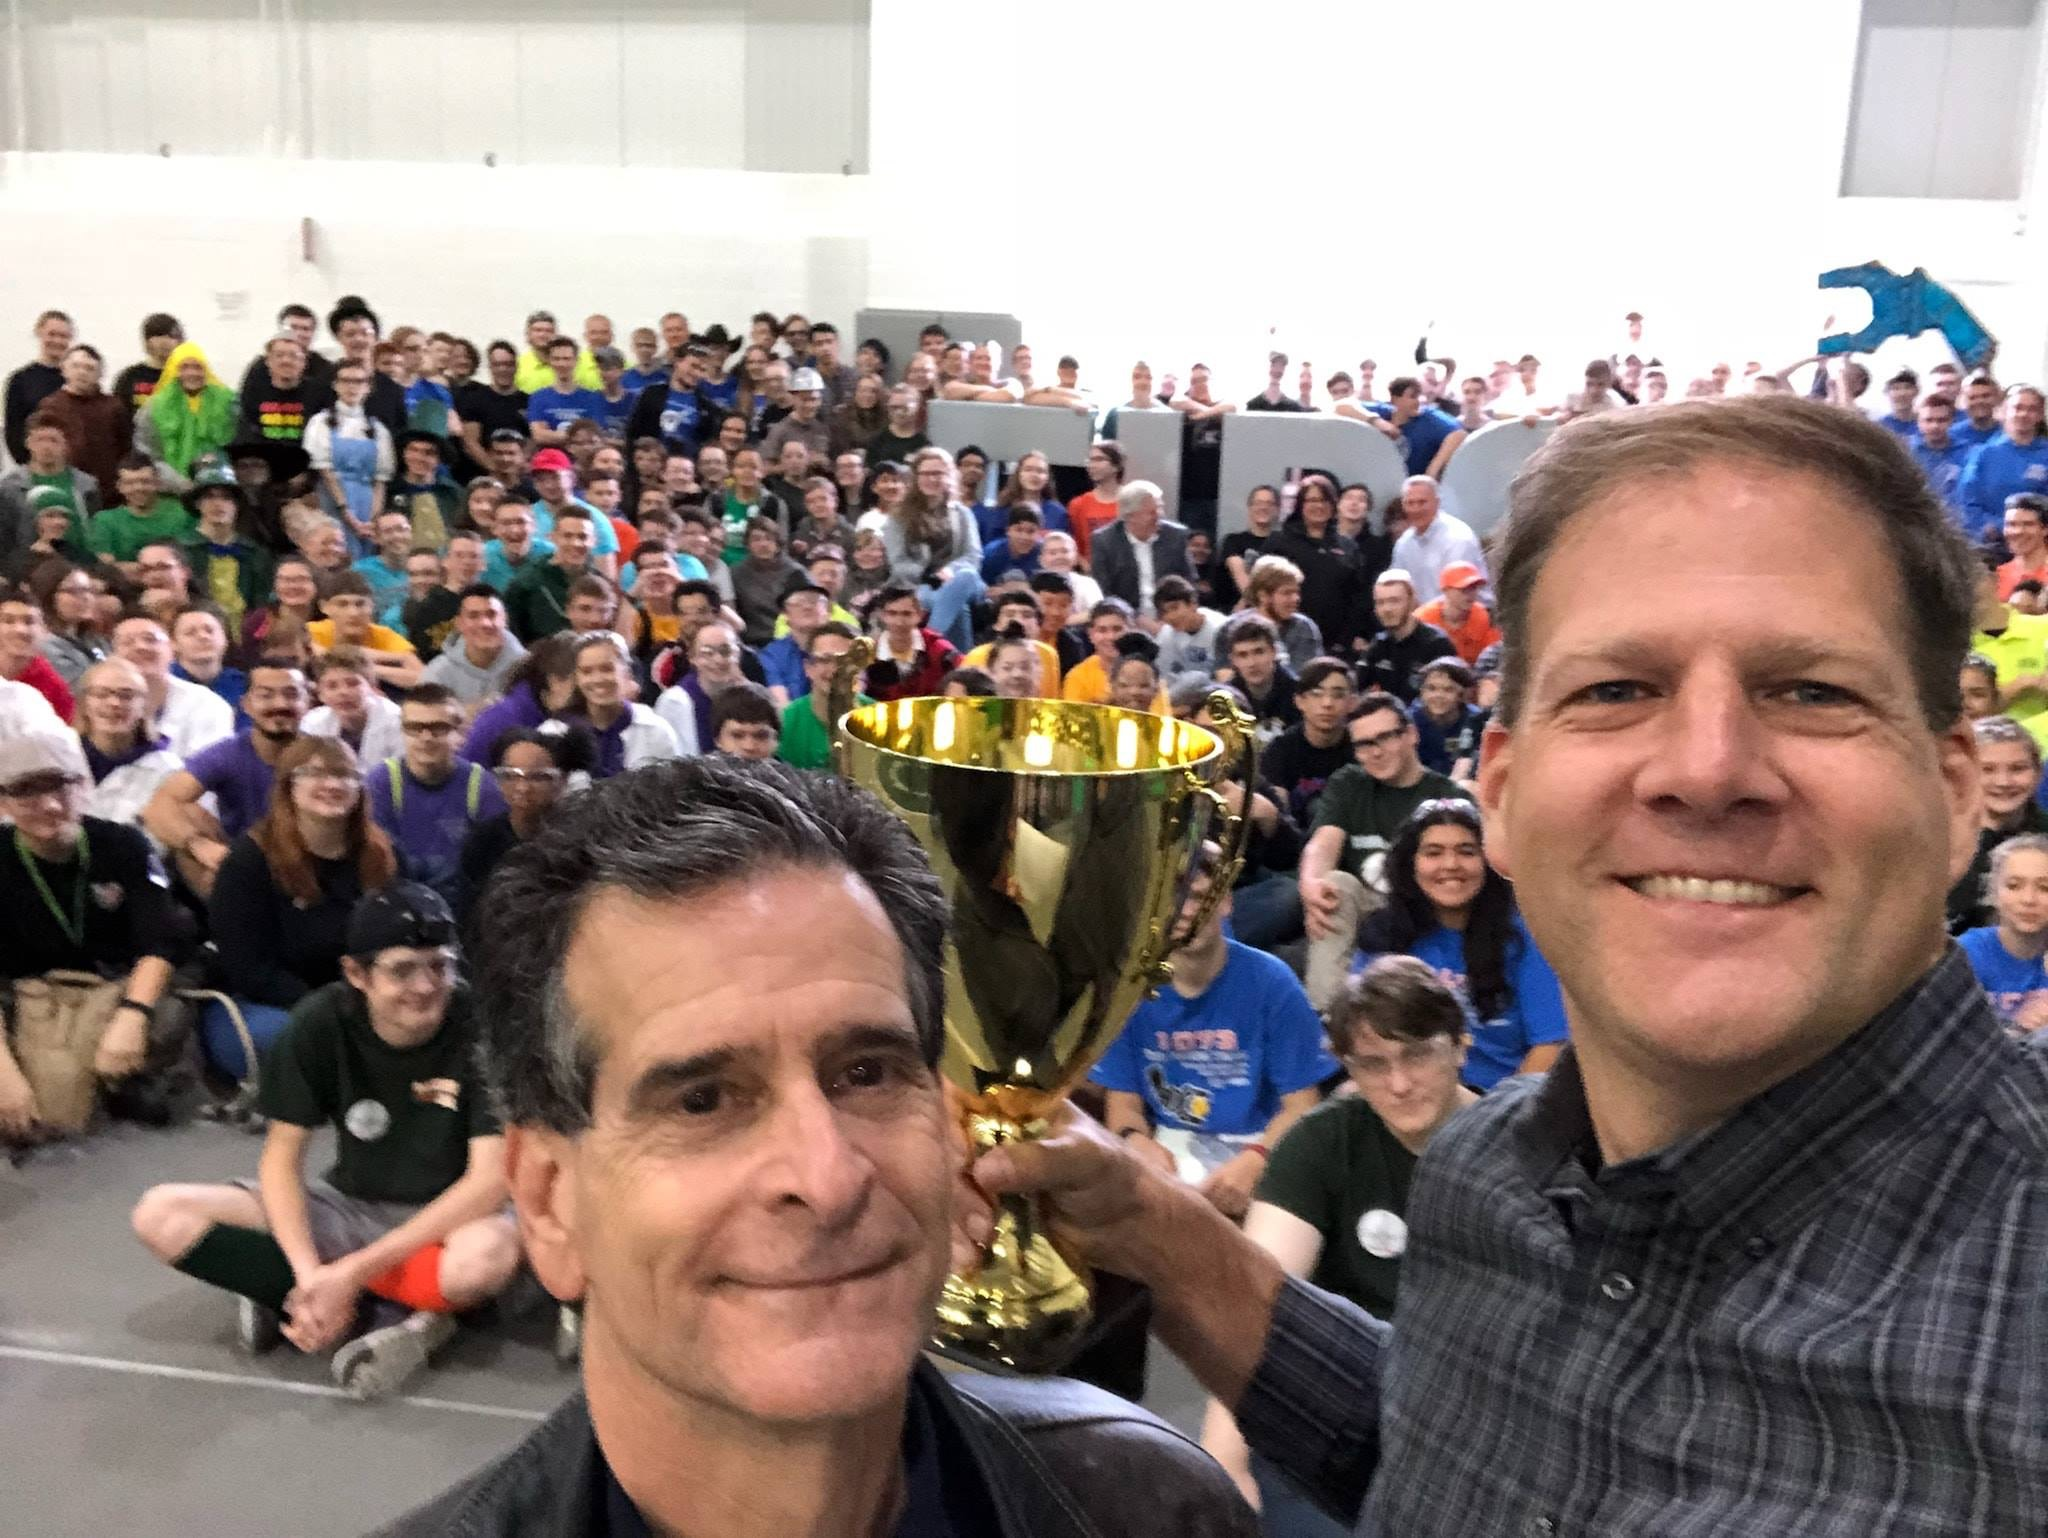 FIRST's co-founder, Dean Kamen, and NH's Governor, Chris Sununu, at the Governor's Cup